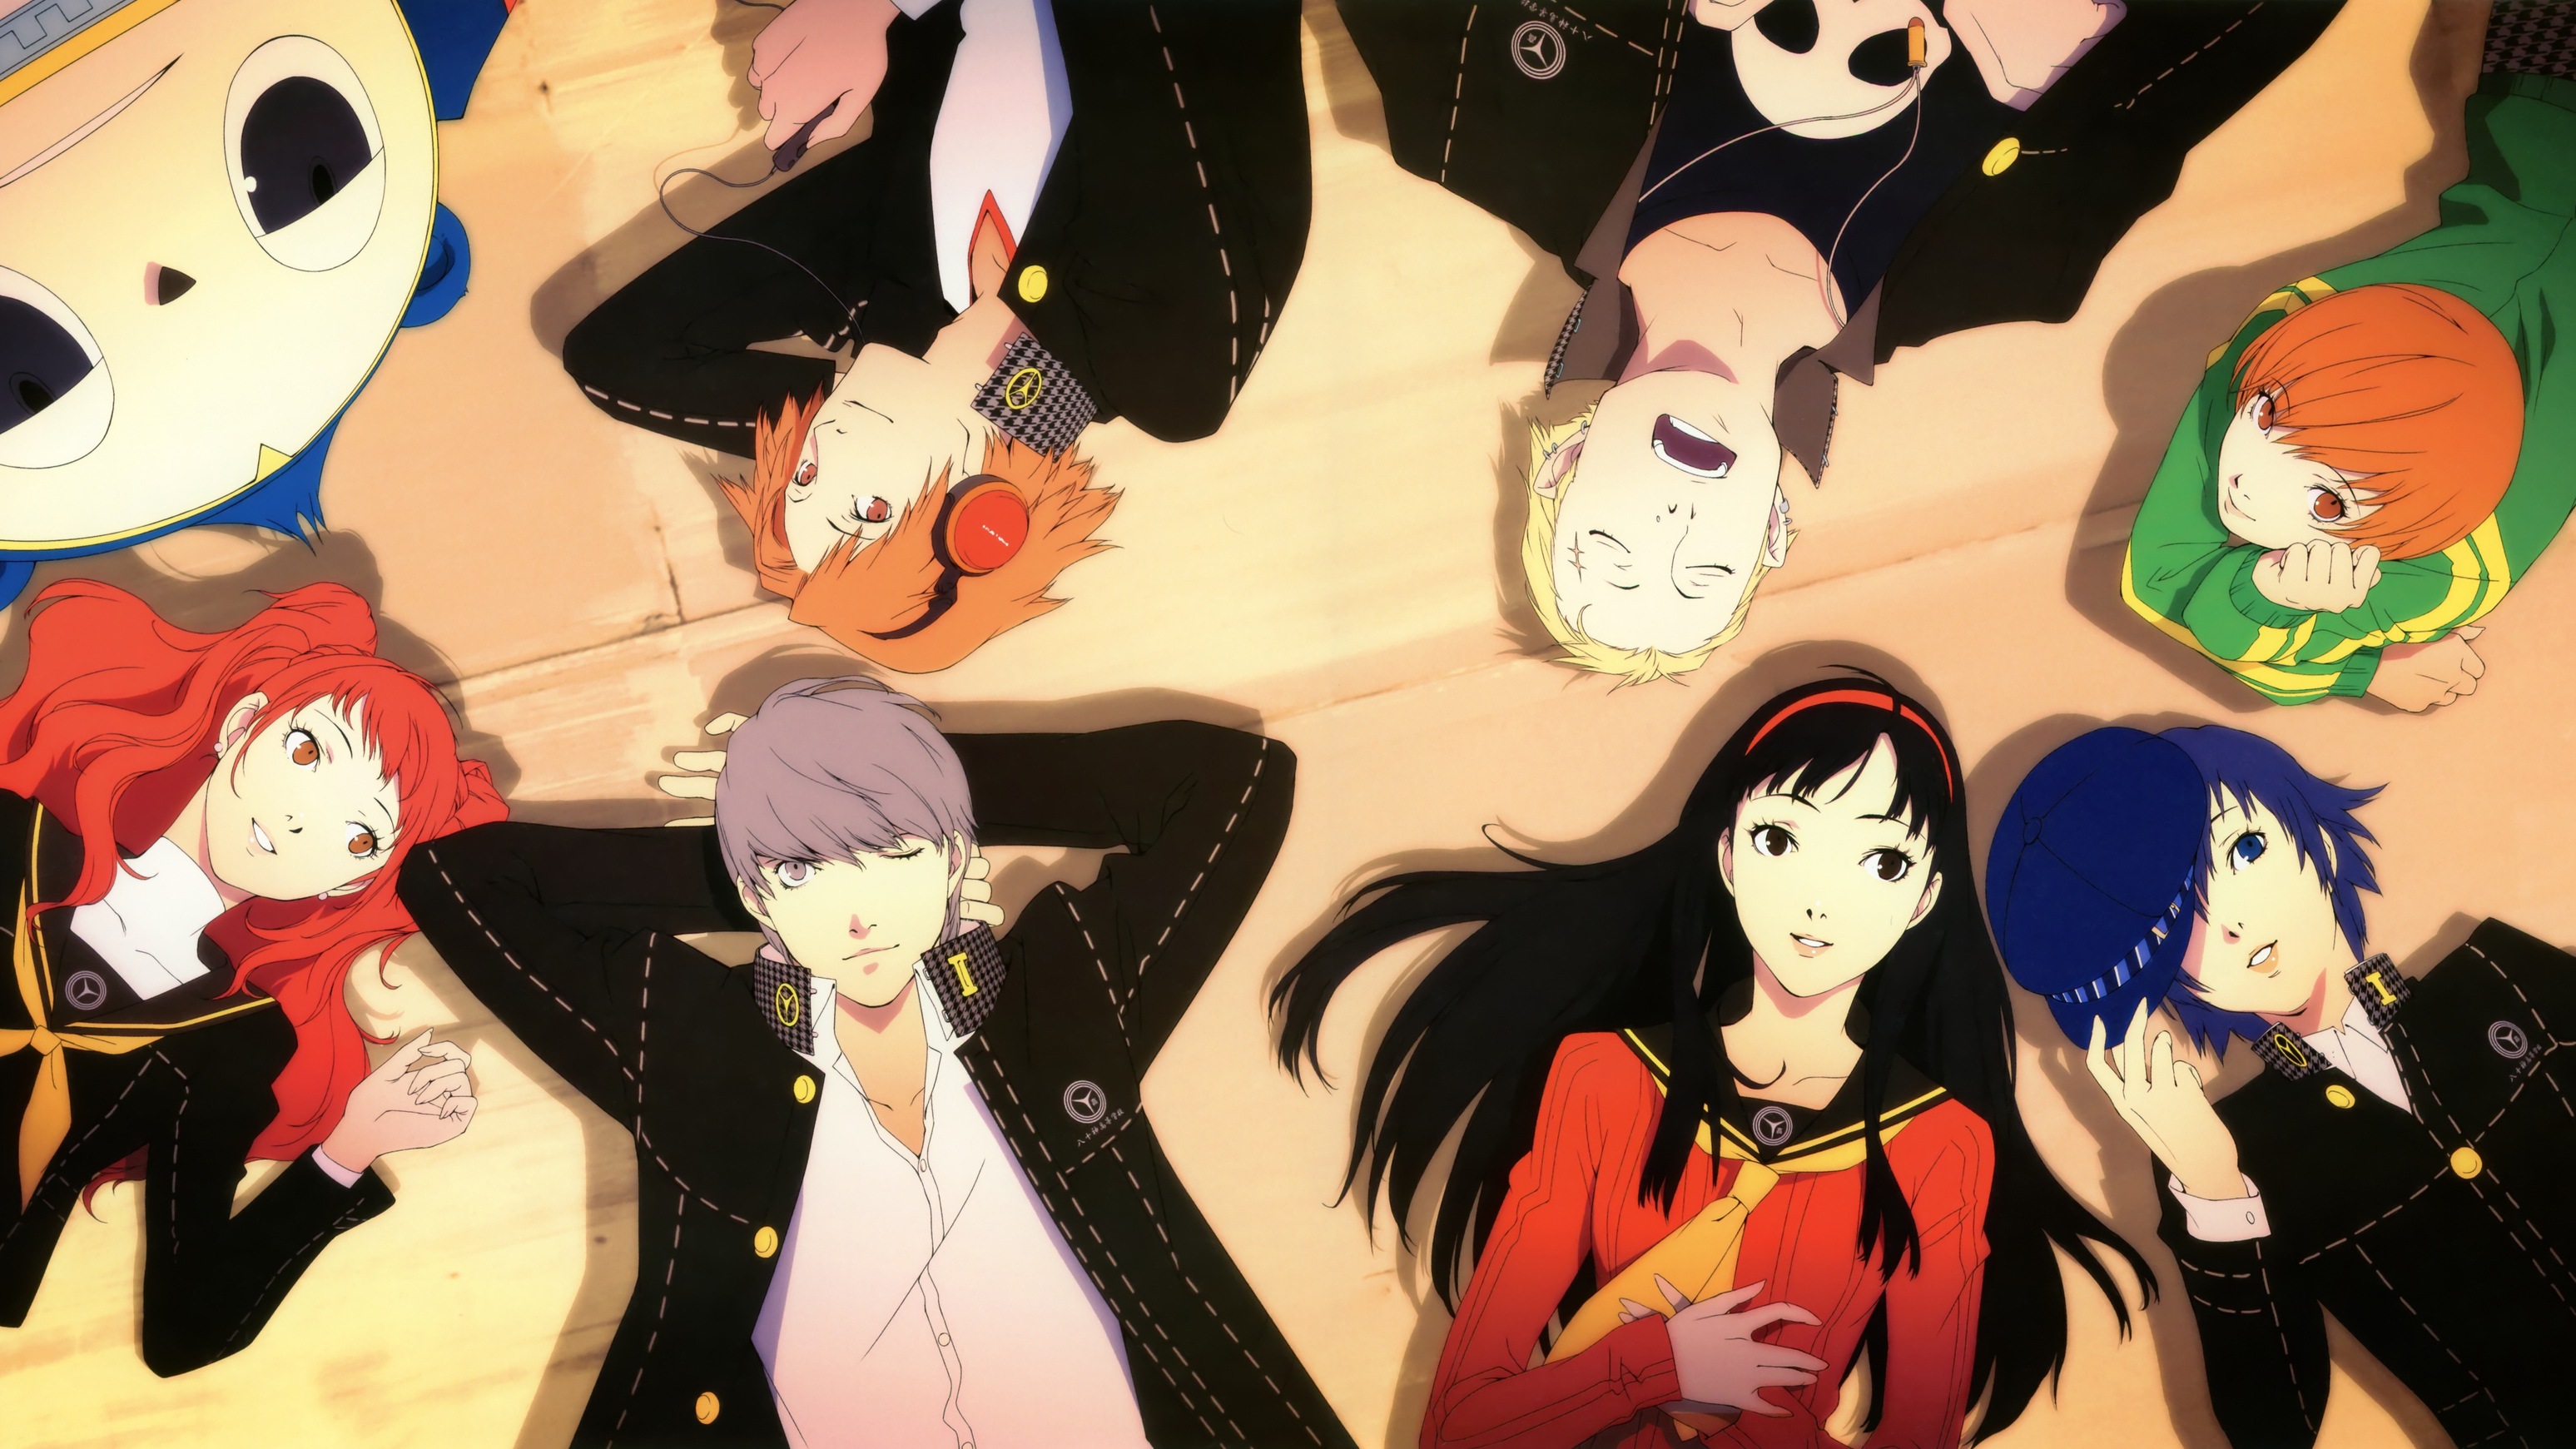 Persona 4 Golden Backgrounds on Wallpapers Vista